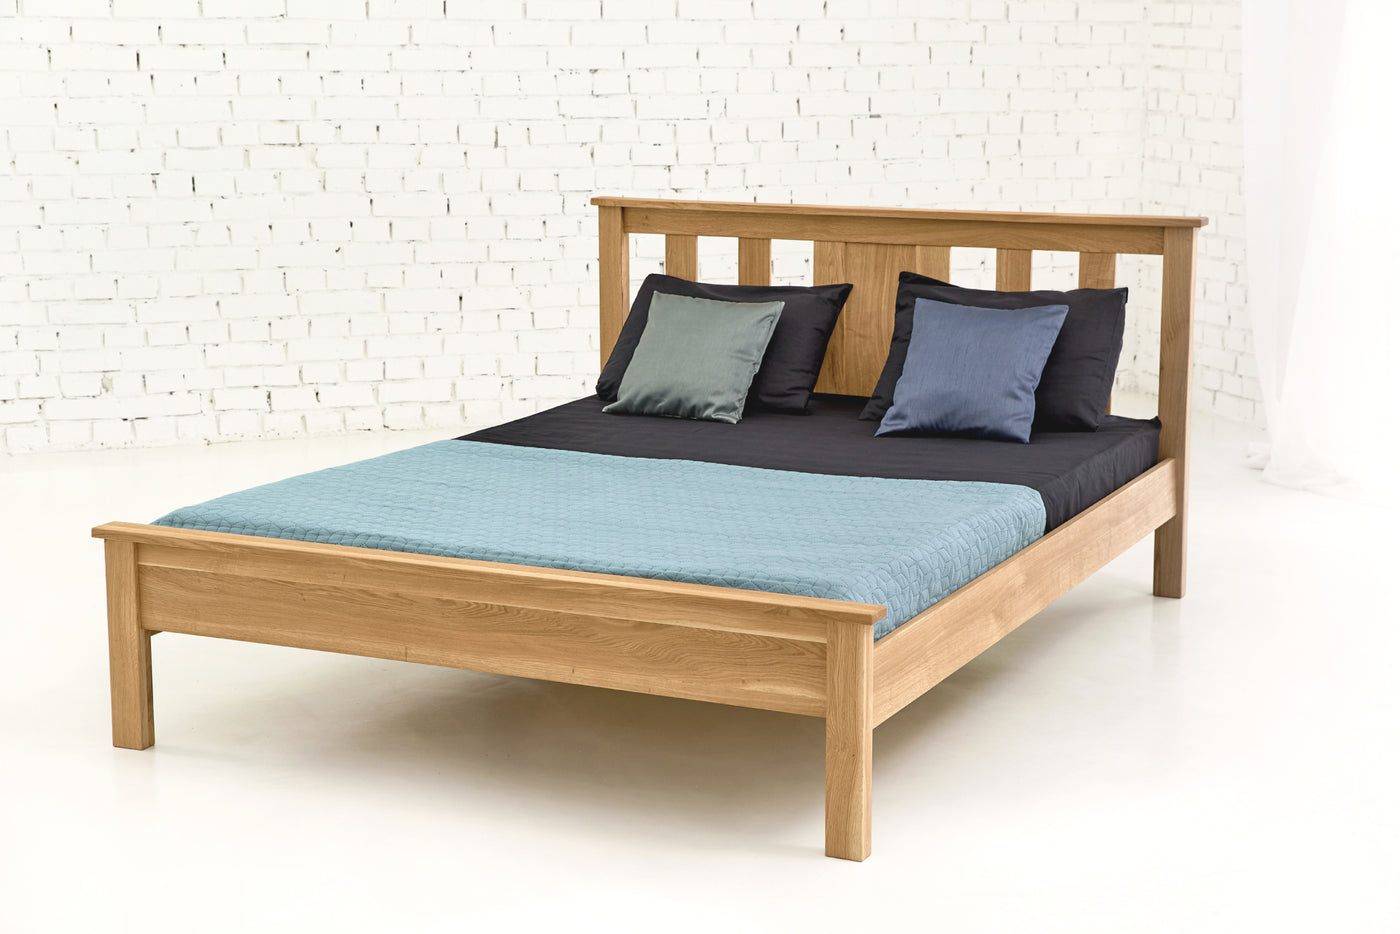 Edmonton Solid Oak Bed 5ft King Size Directly From